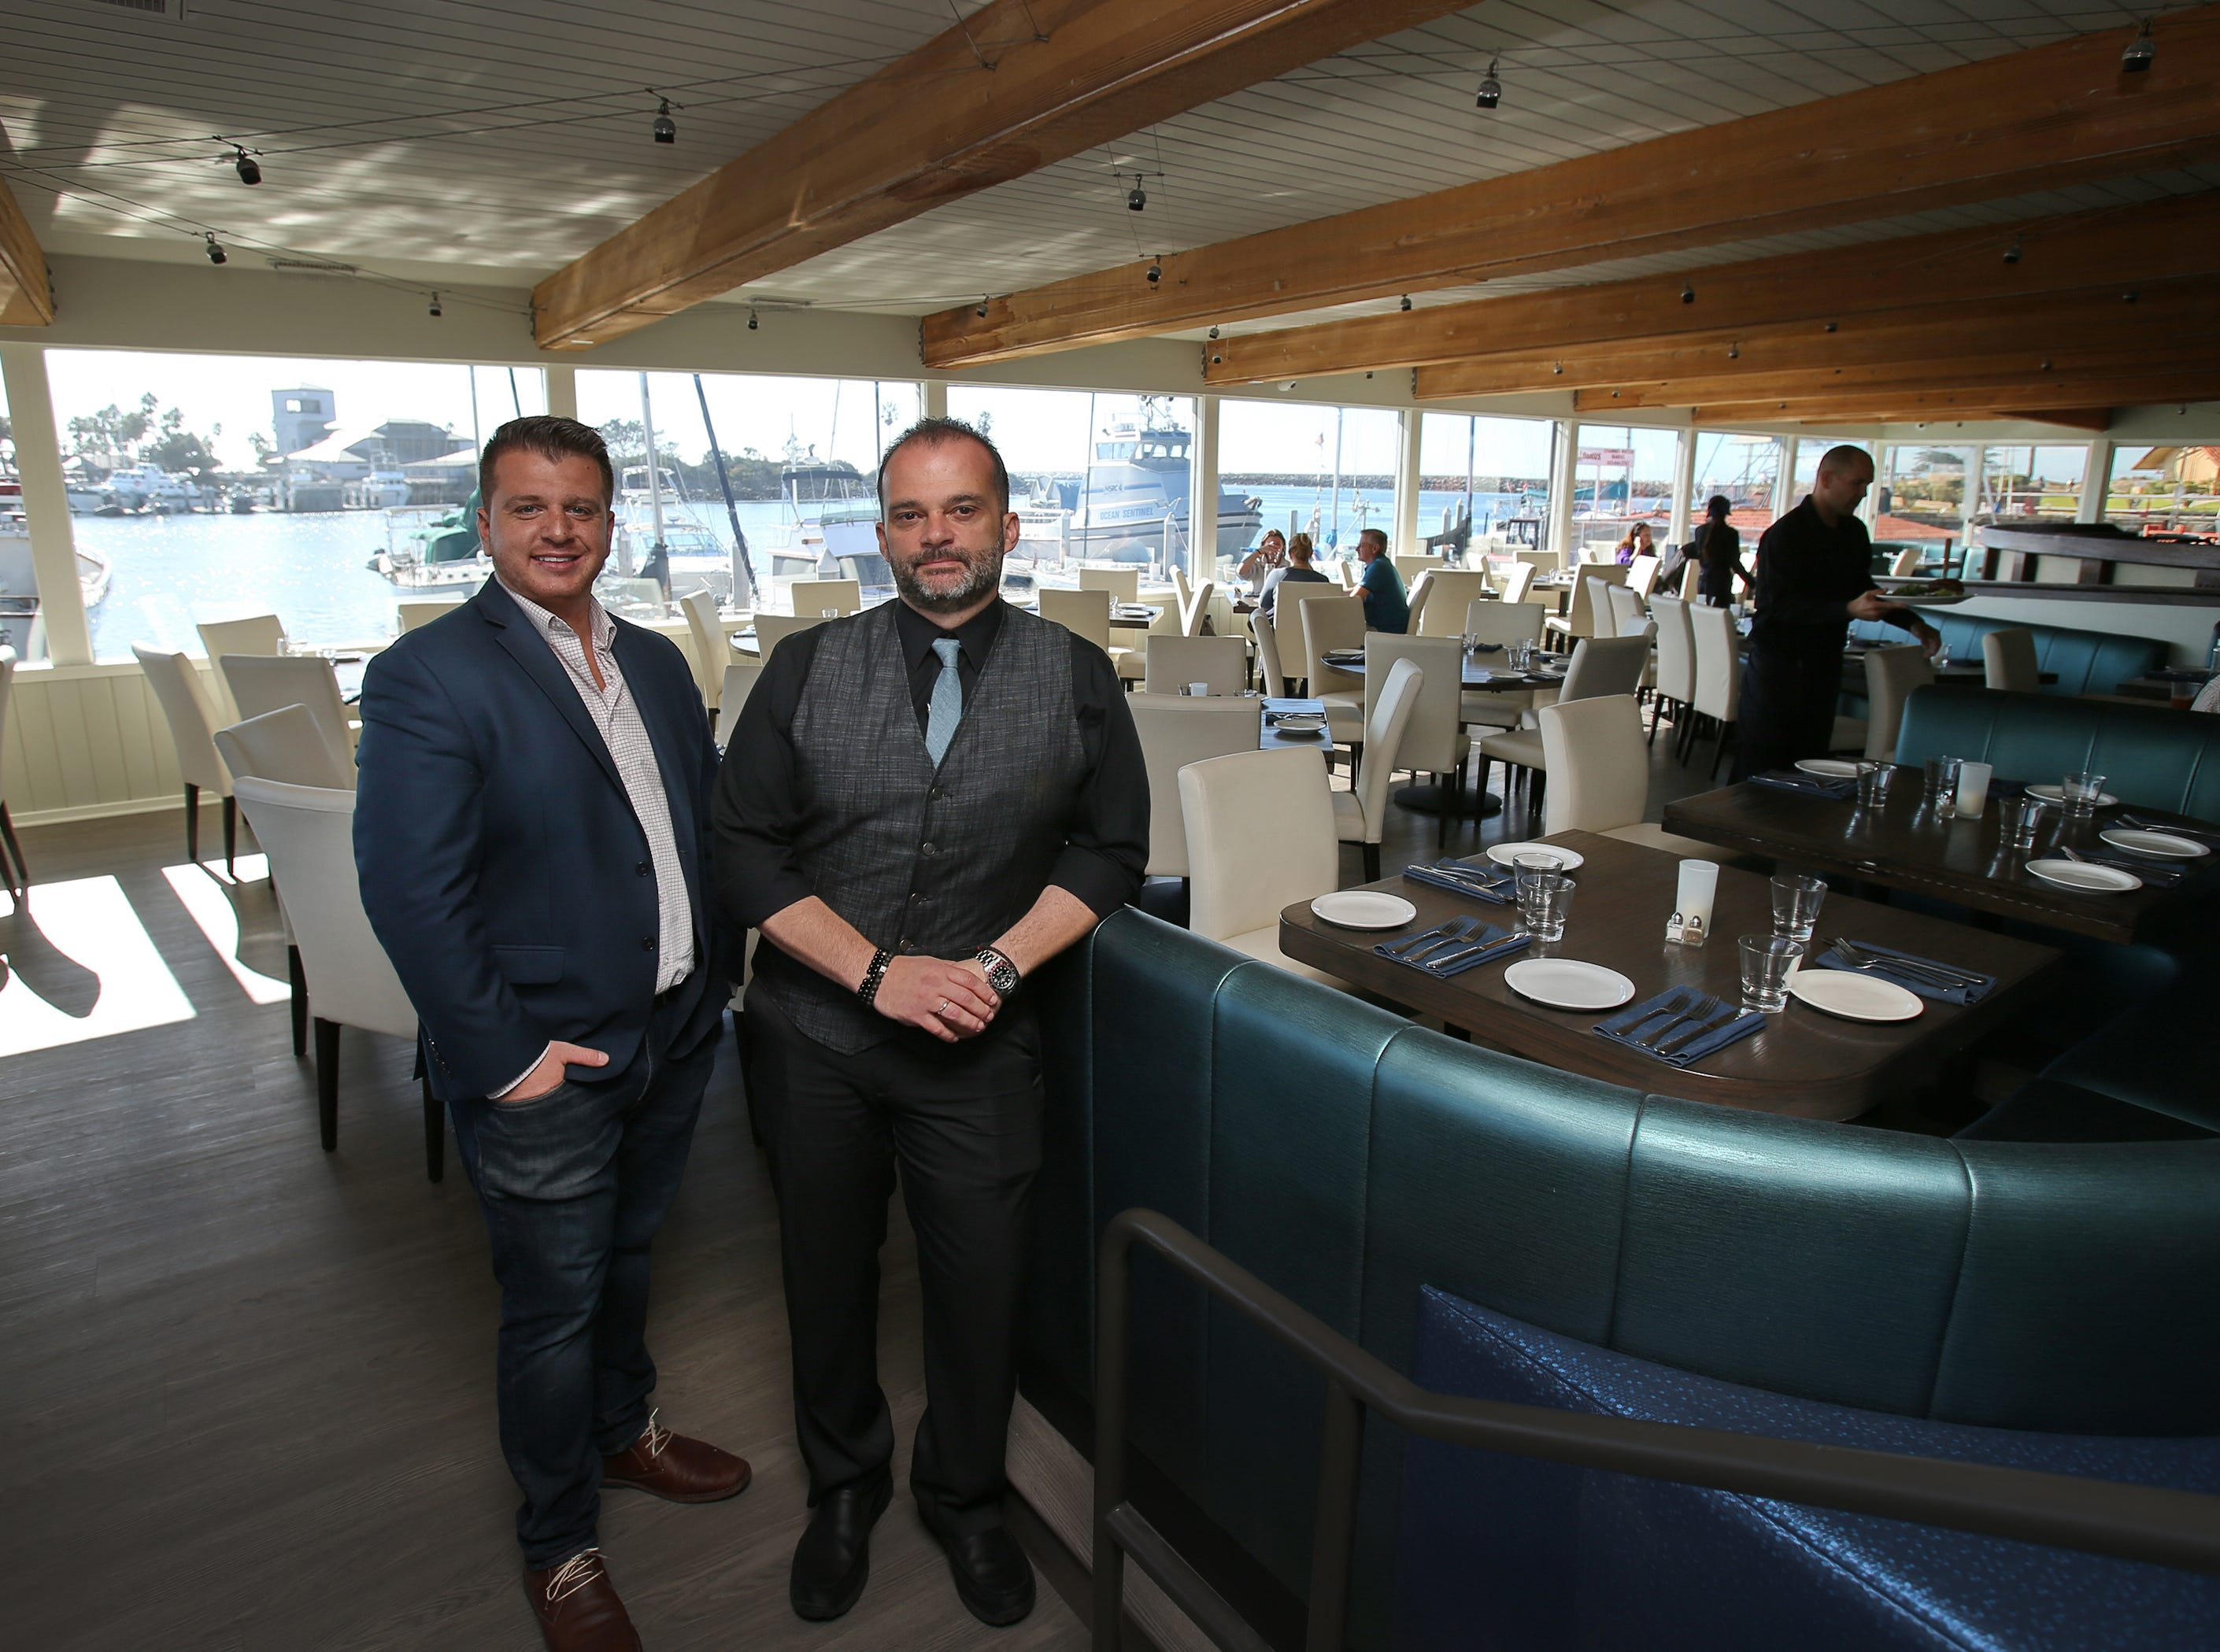 Water's Edge Restaurant and Bar's General Manager Tony Dybeku and Director of Operations Orestis Simos stand in the main dining area of their new restaurant at the Ventura Harbor.